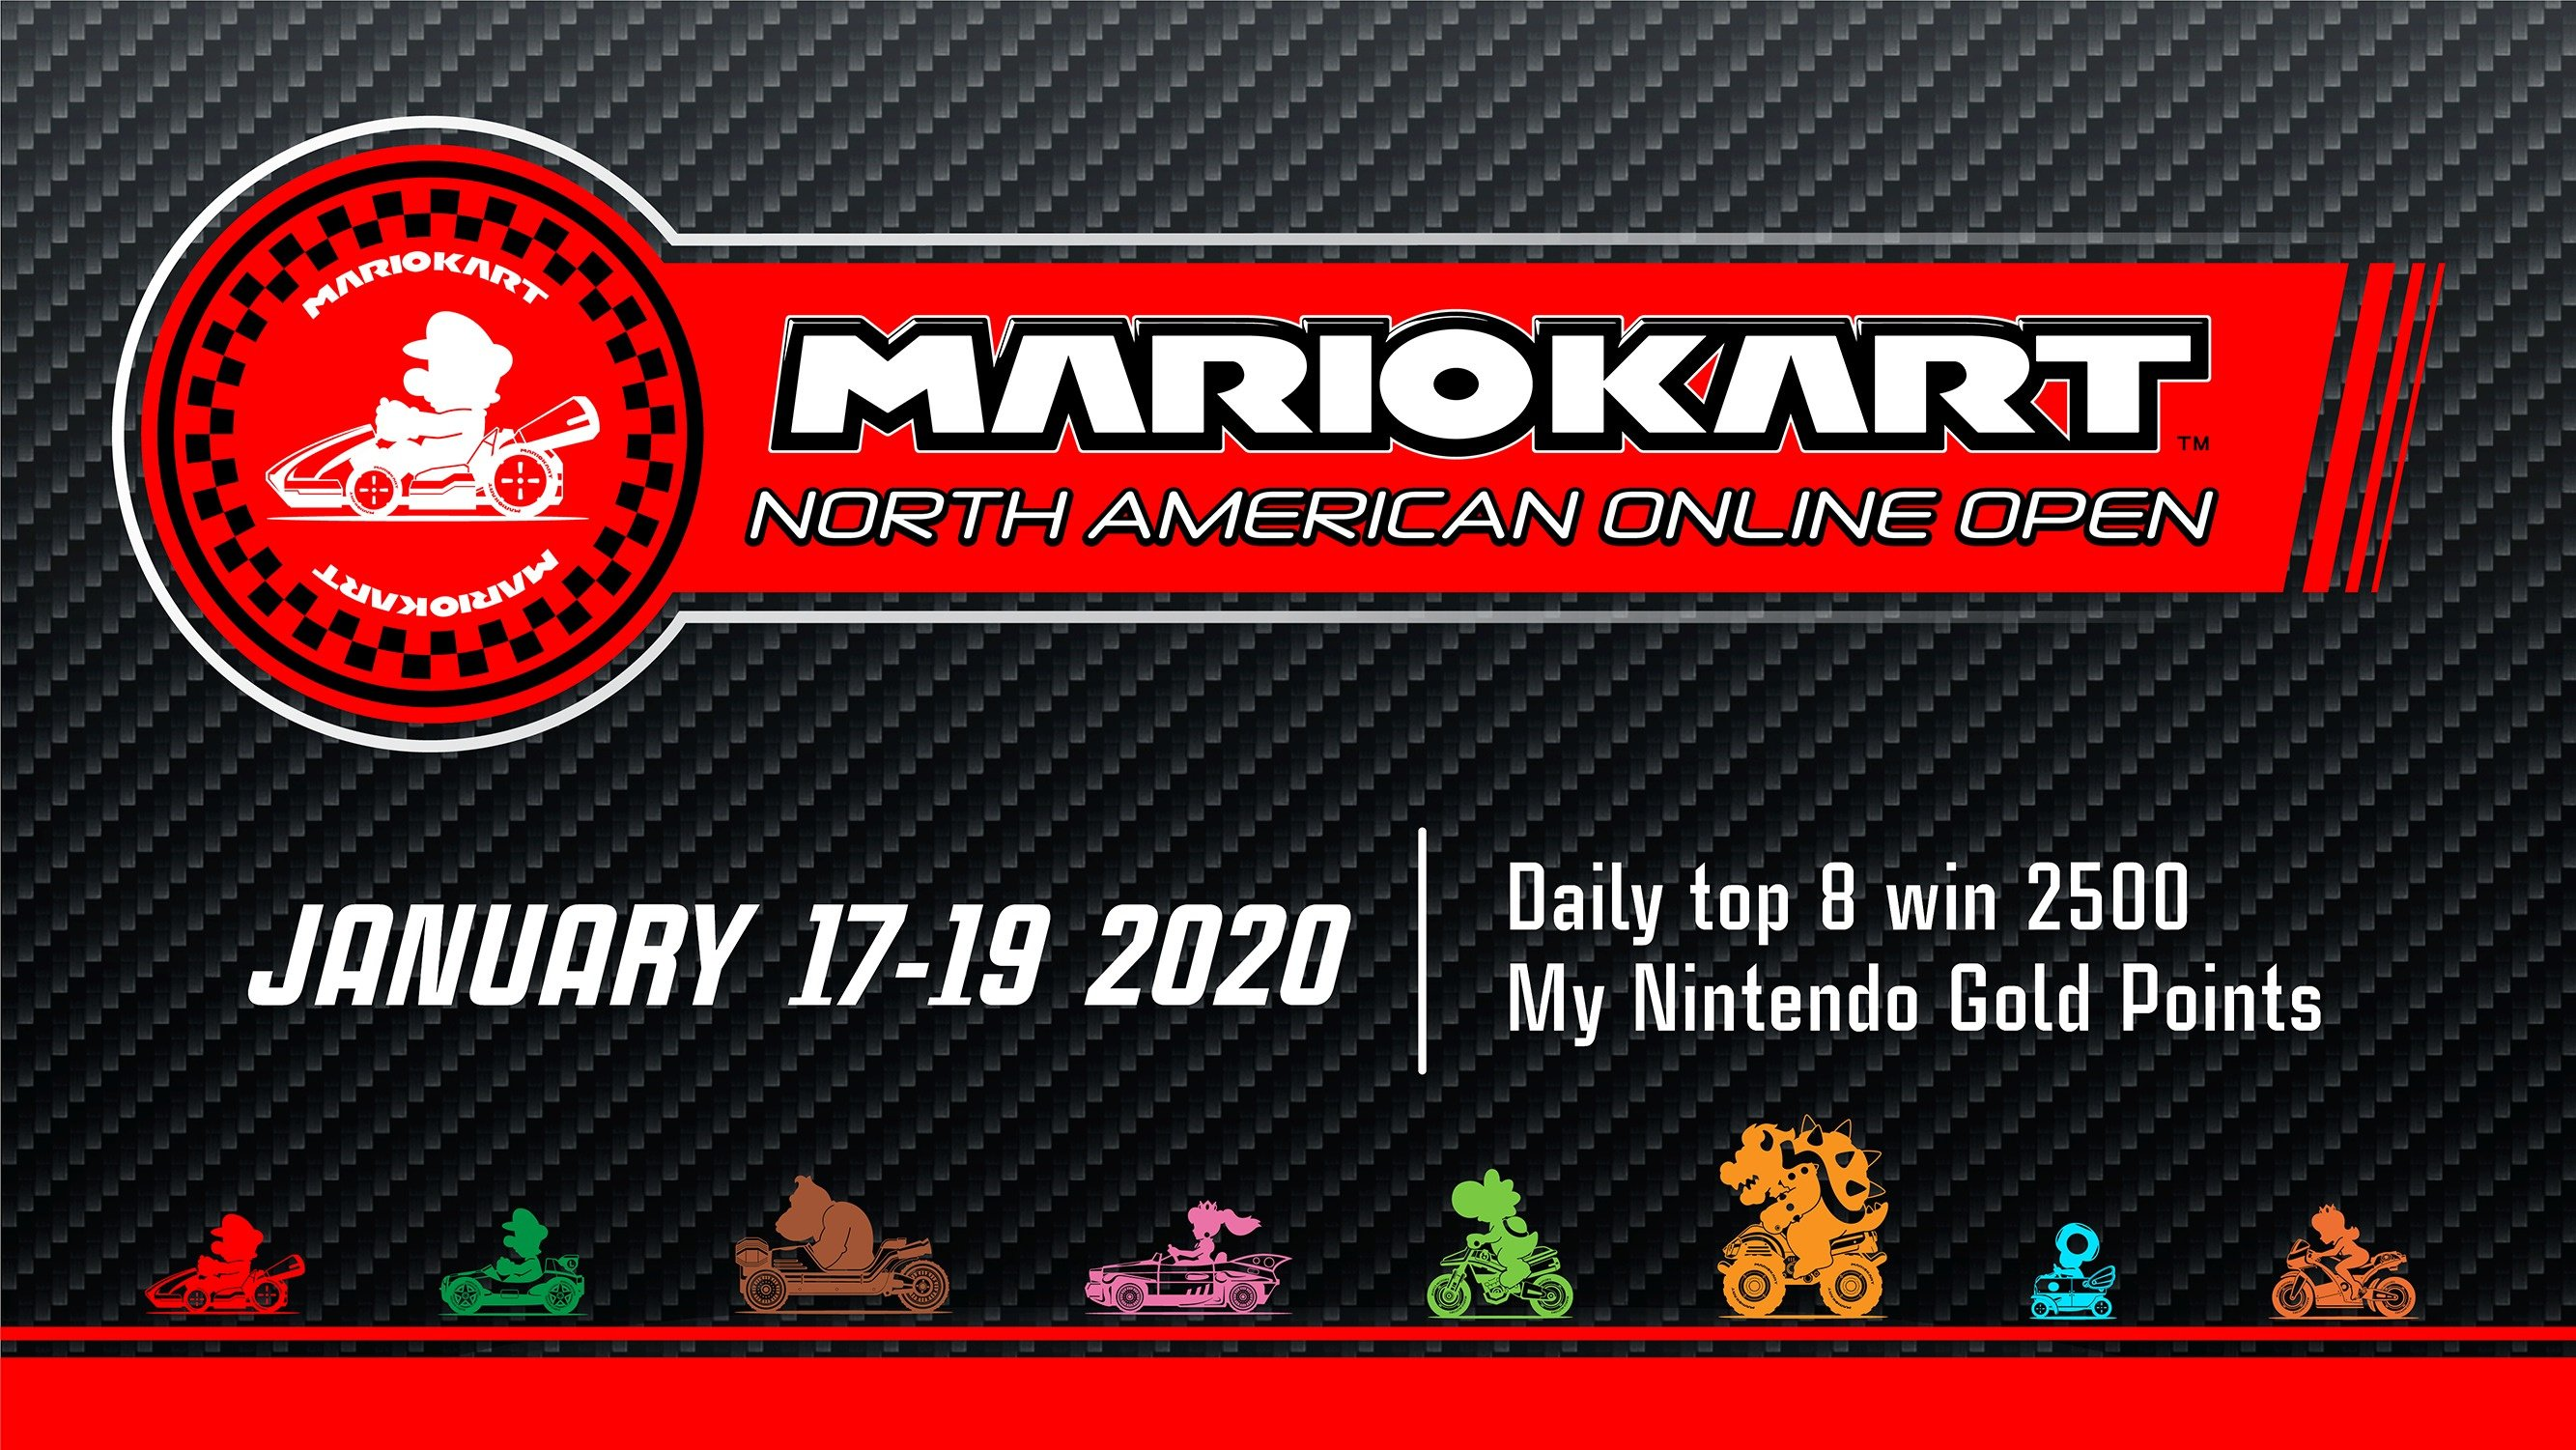 On Your Marks For The Mario Kart North American Online Open, Starting Today